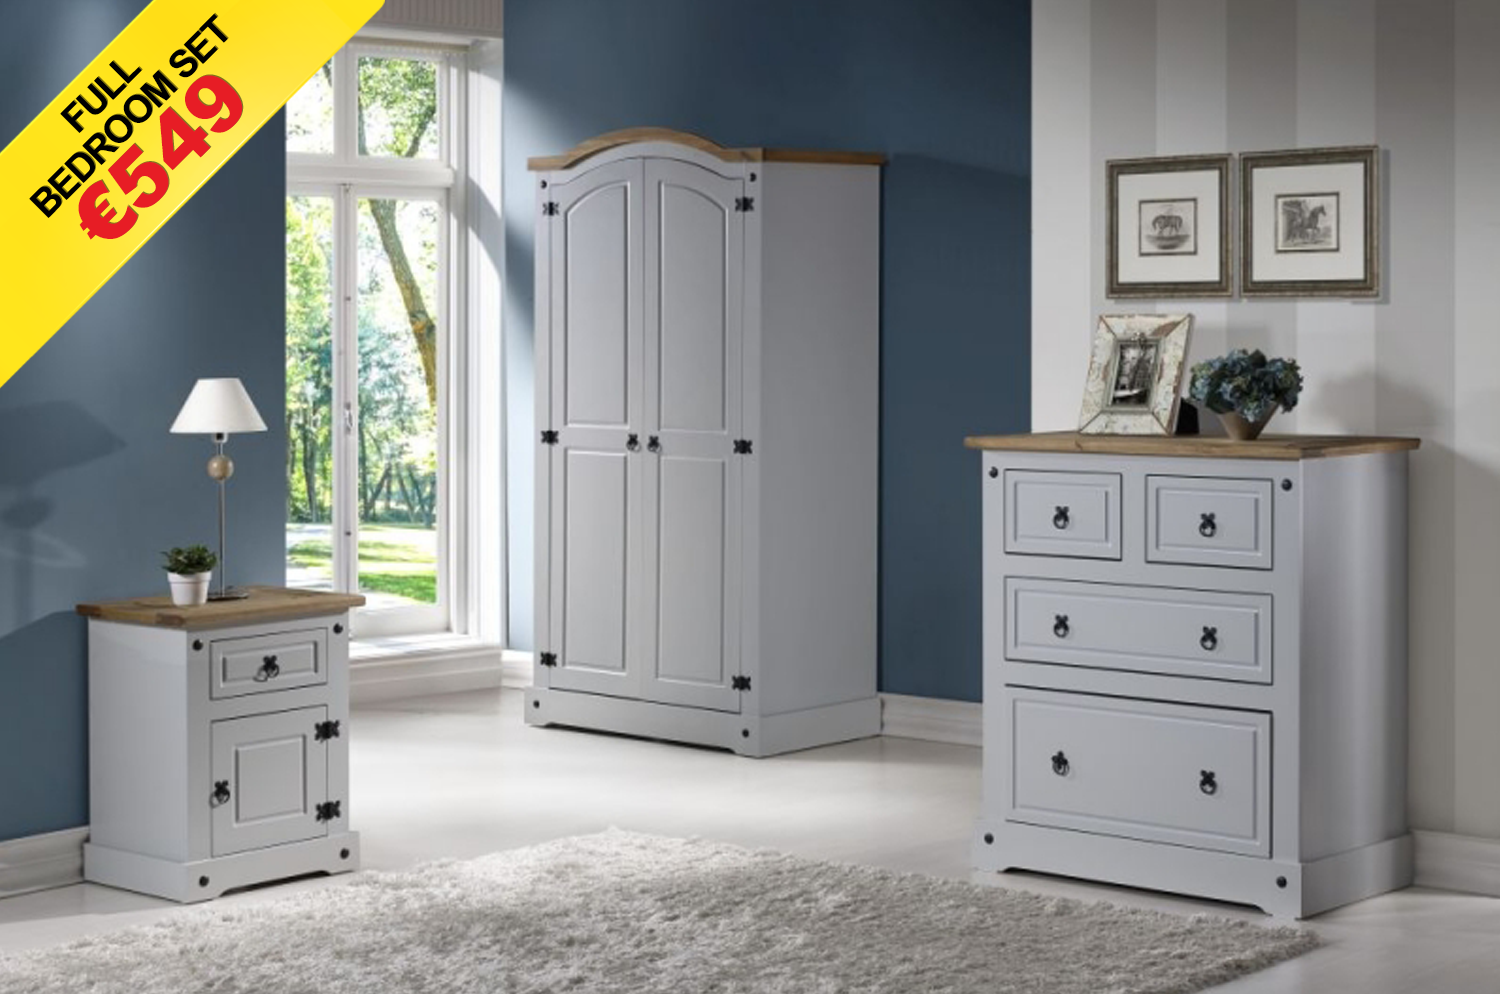 Bedroom packages for sale in dundalk co louth for Bedroom furniture packages sale